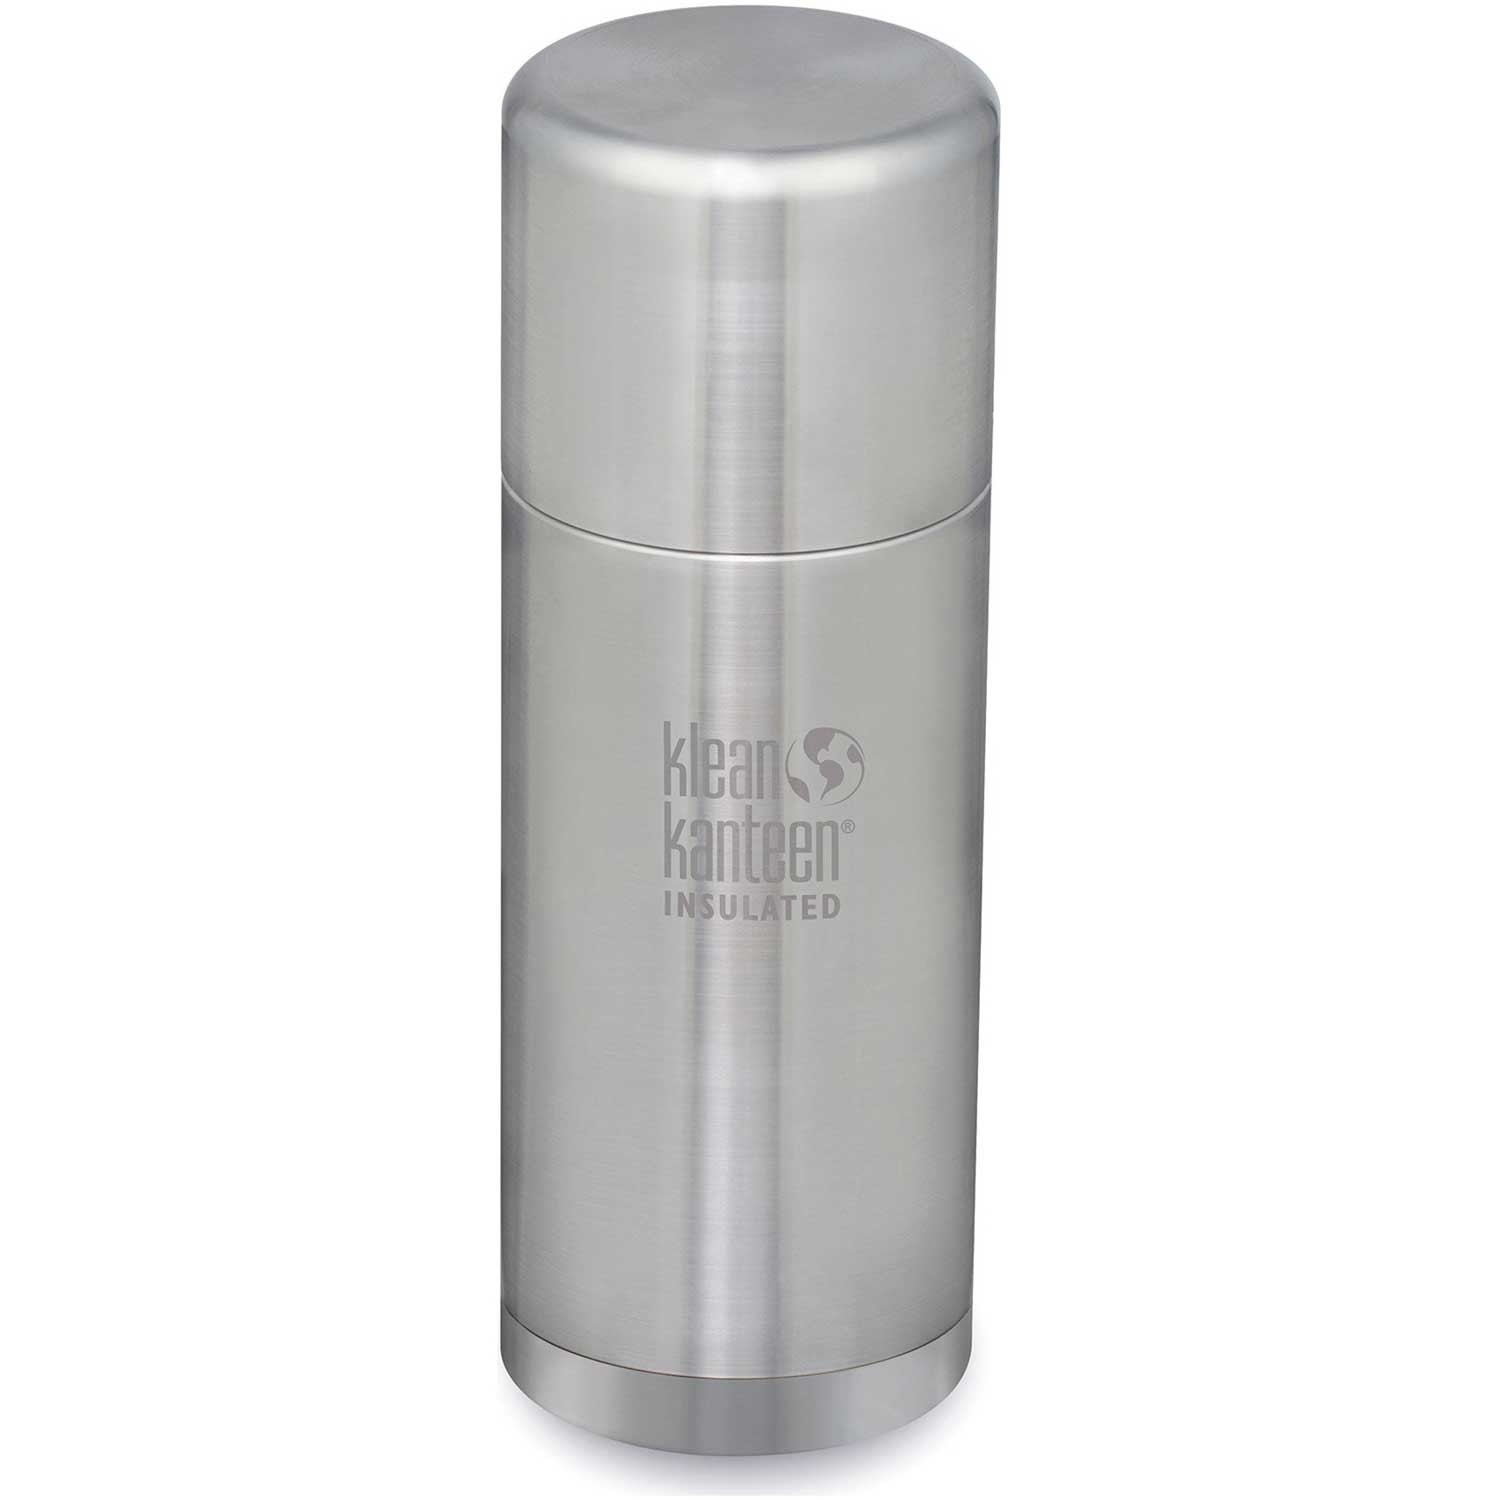 Klean Kanteen Insulated TKPro Flask - 750ml - Brushed Stainless